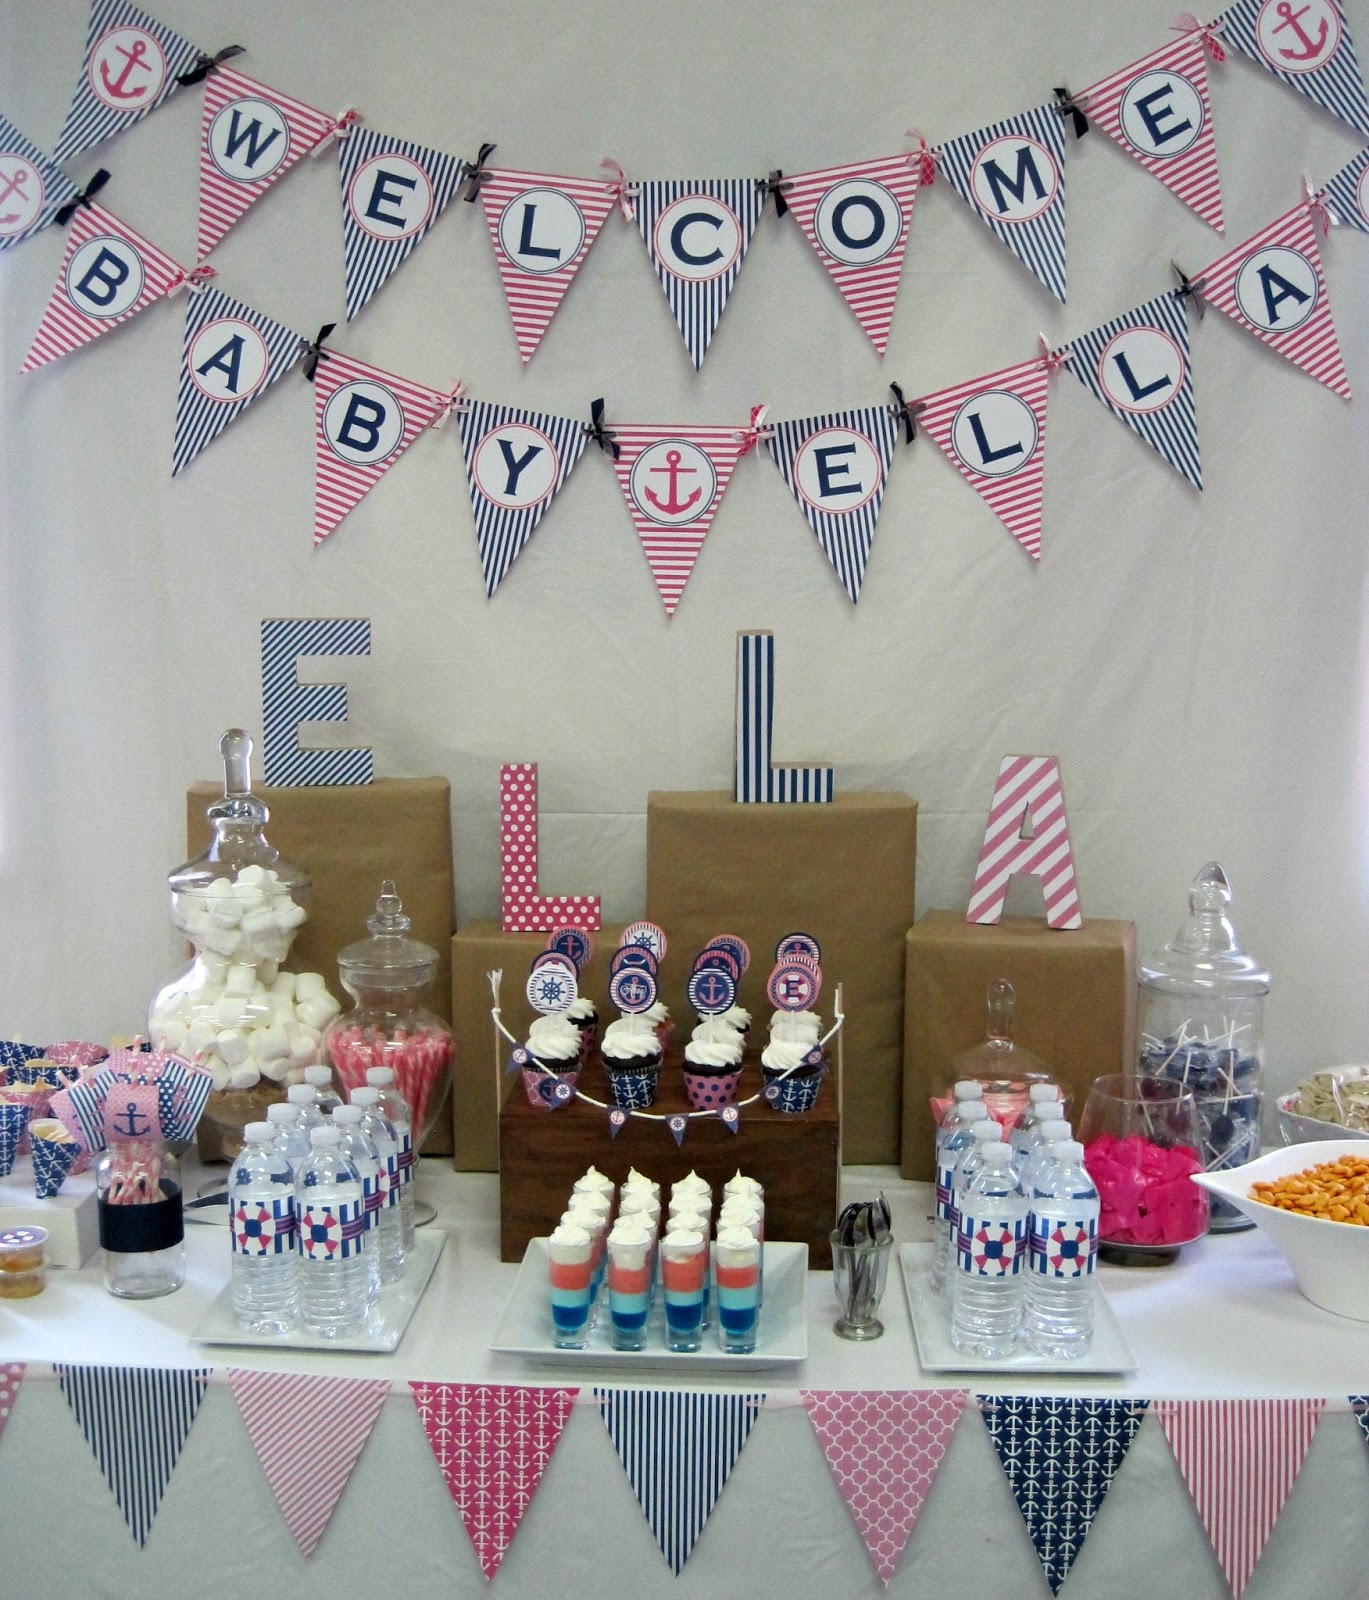 Nautical Decor Centerpieces: NBrynn: Anchors Away! Nautical Baby Girl Shower